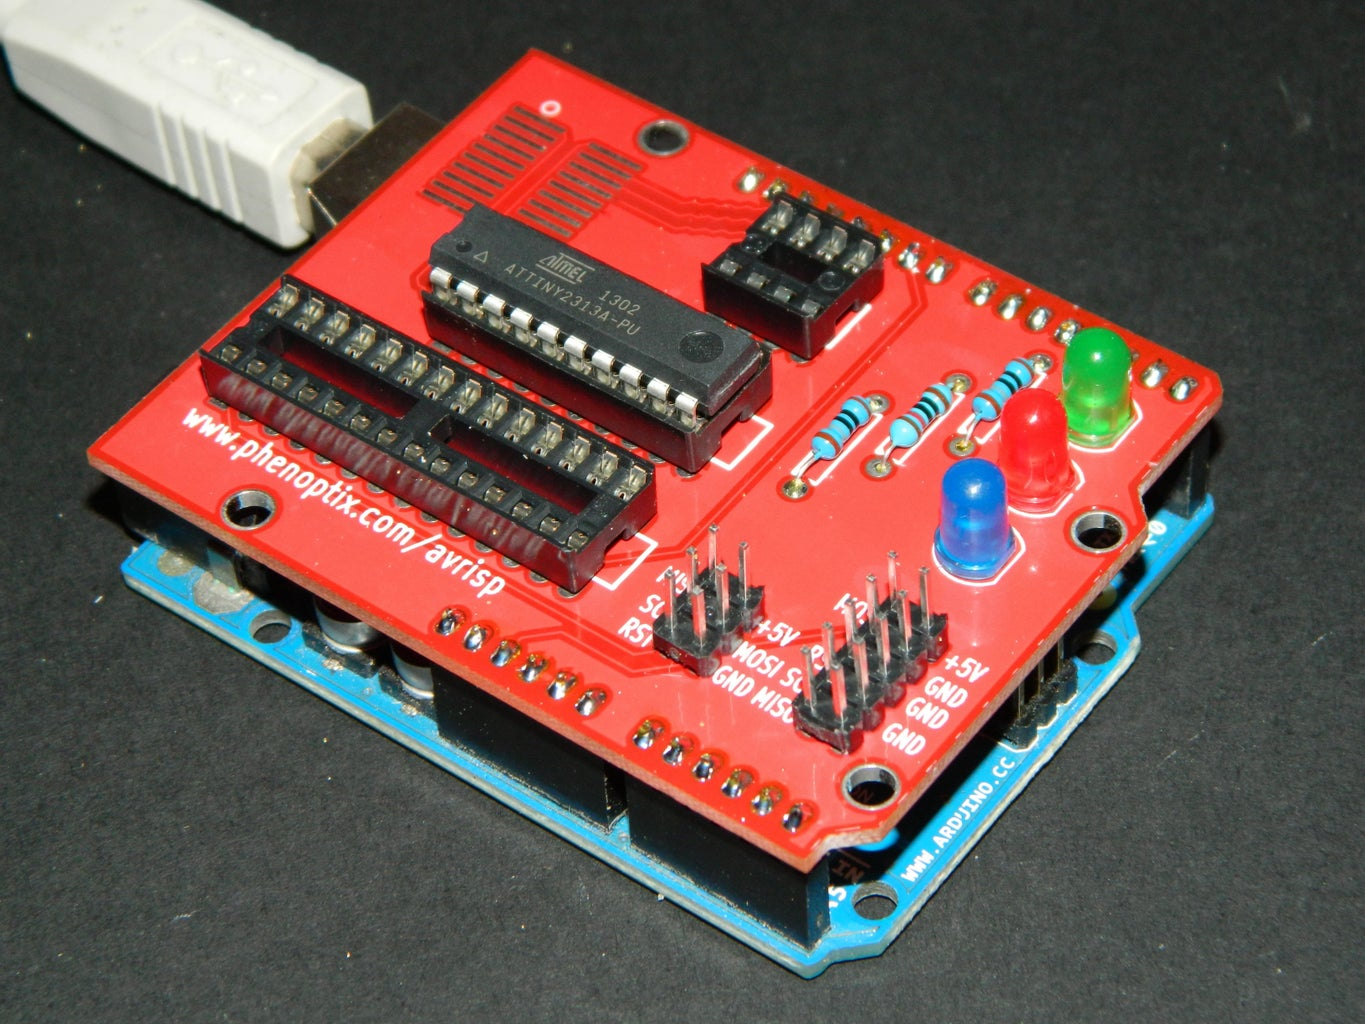 Add Arduino, Chips and Code!